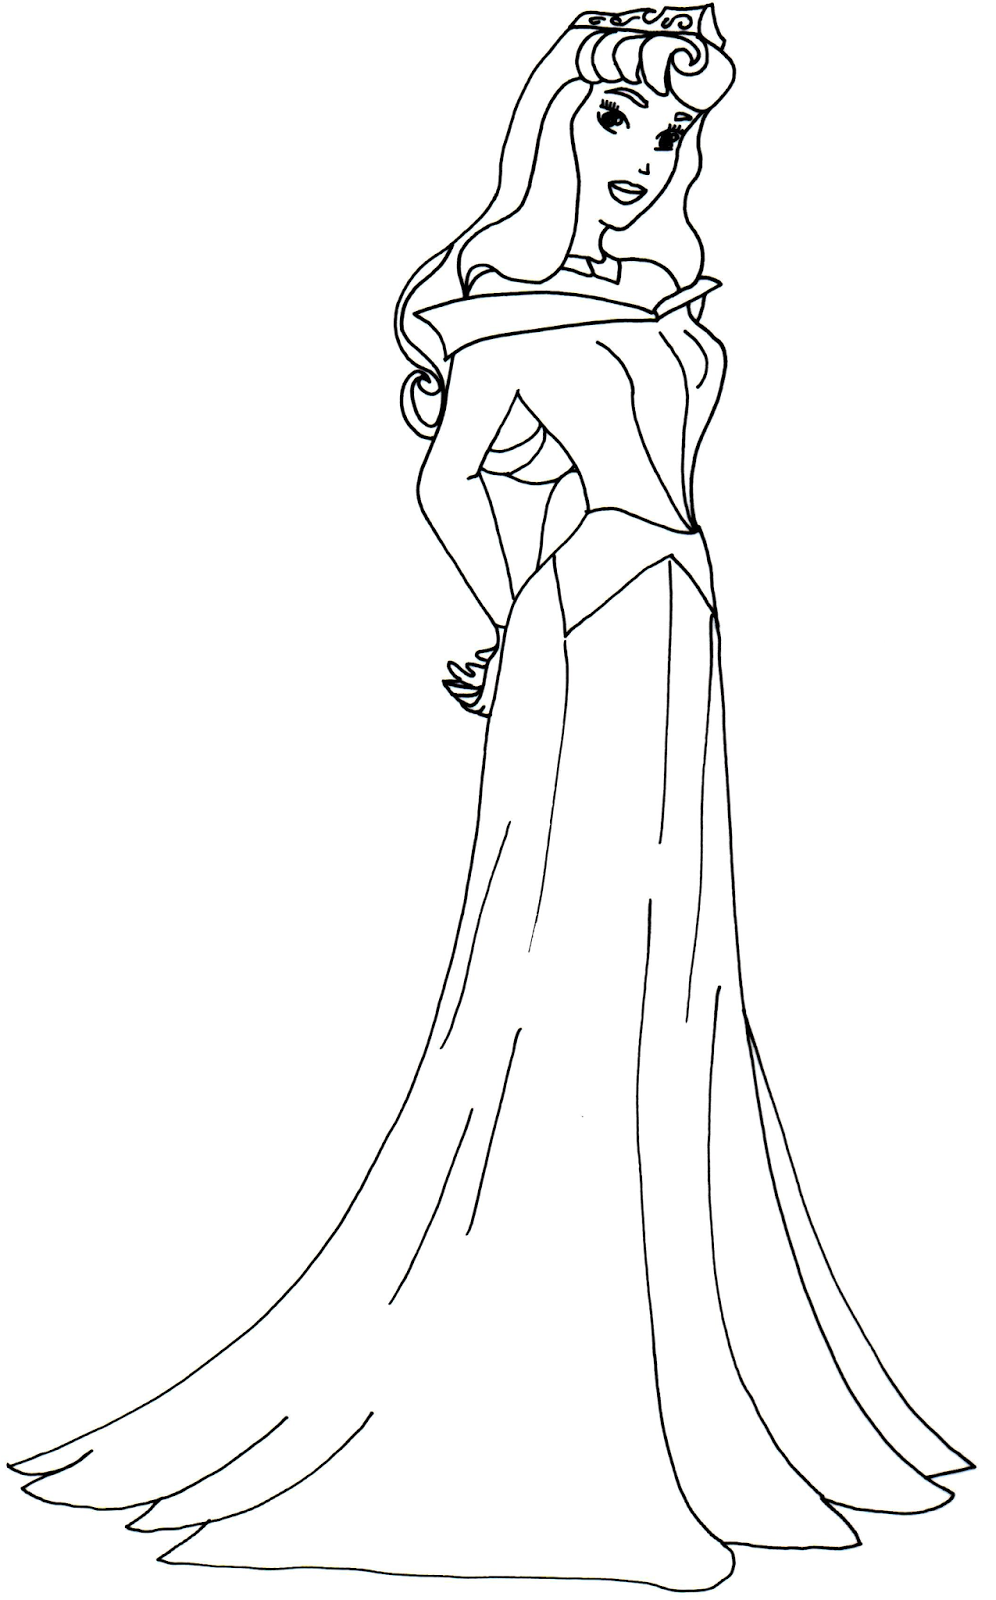 sofia the first coloring pages princess aurora sofia the